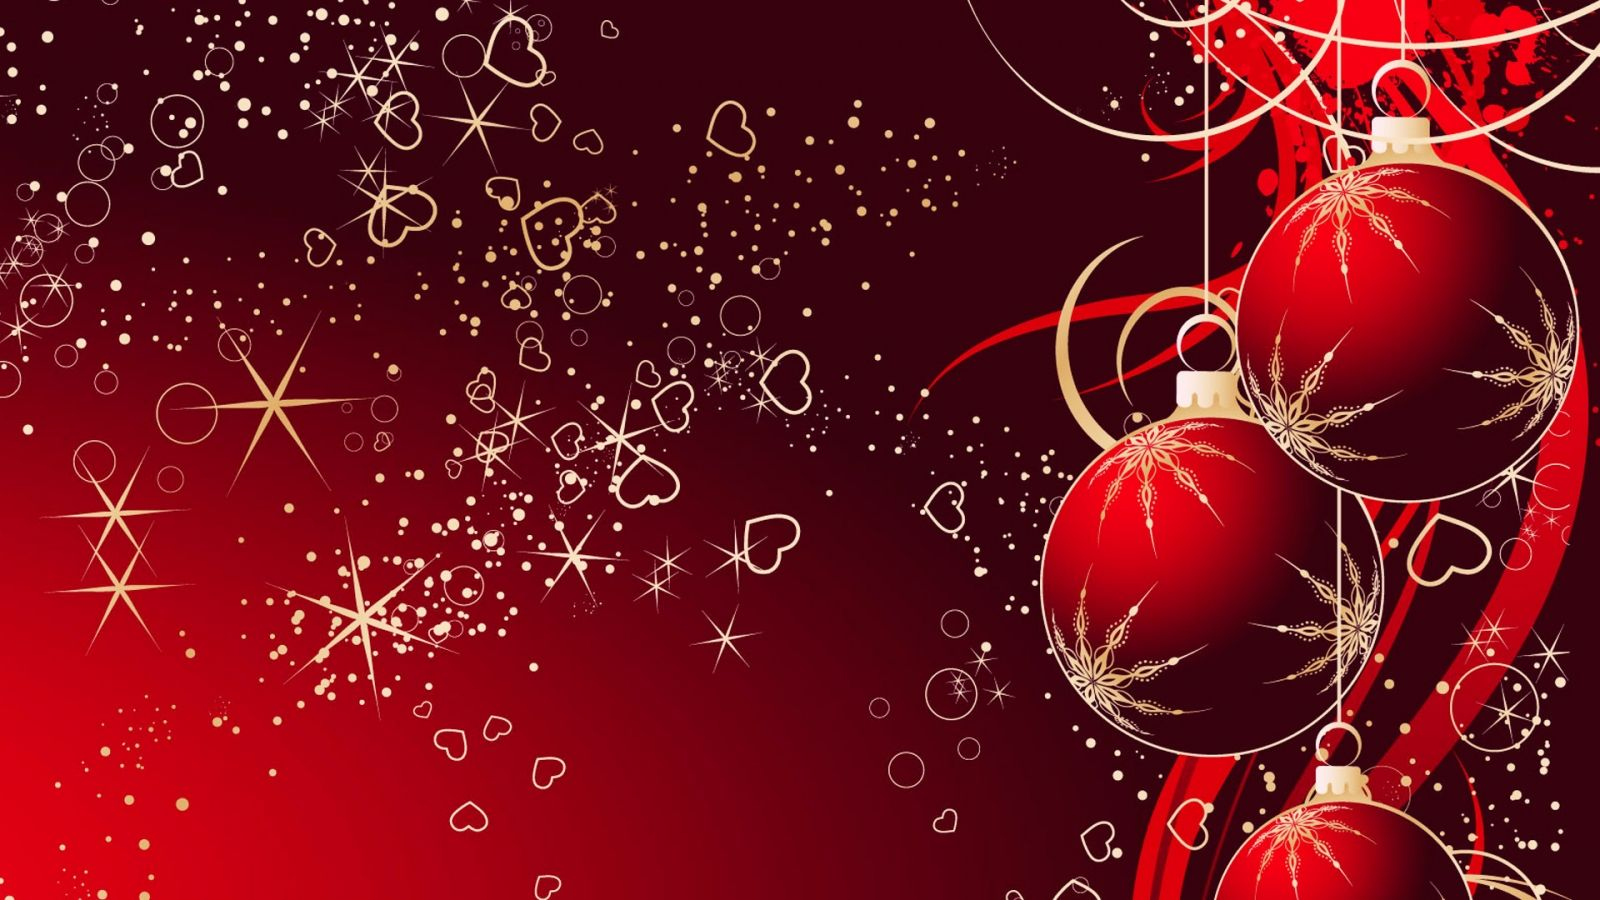 Christmas Wallpapers High Resolution In 2019 Christmas